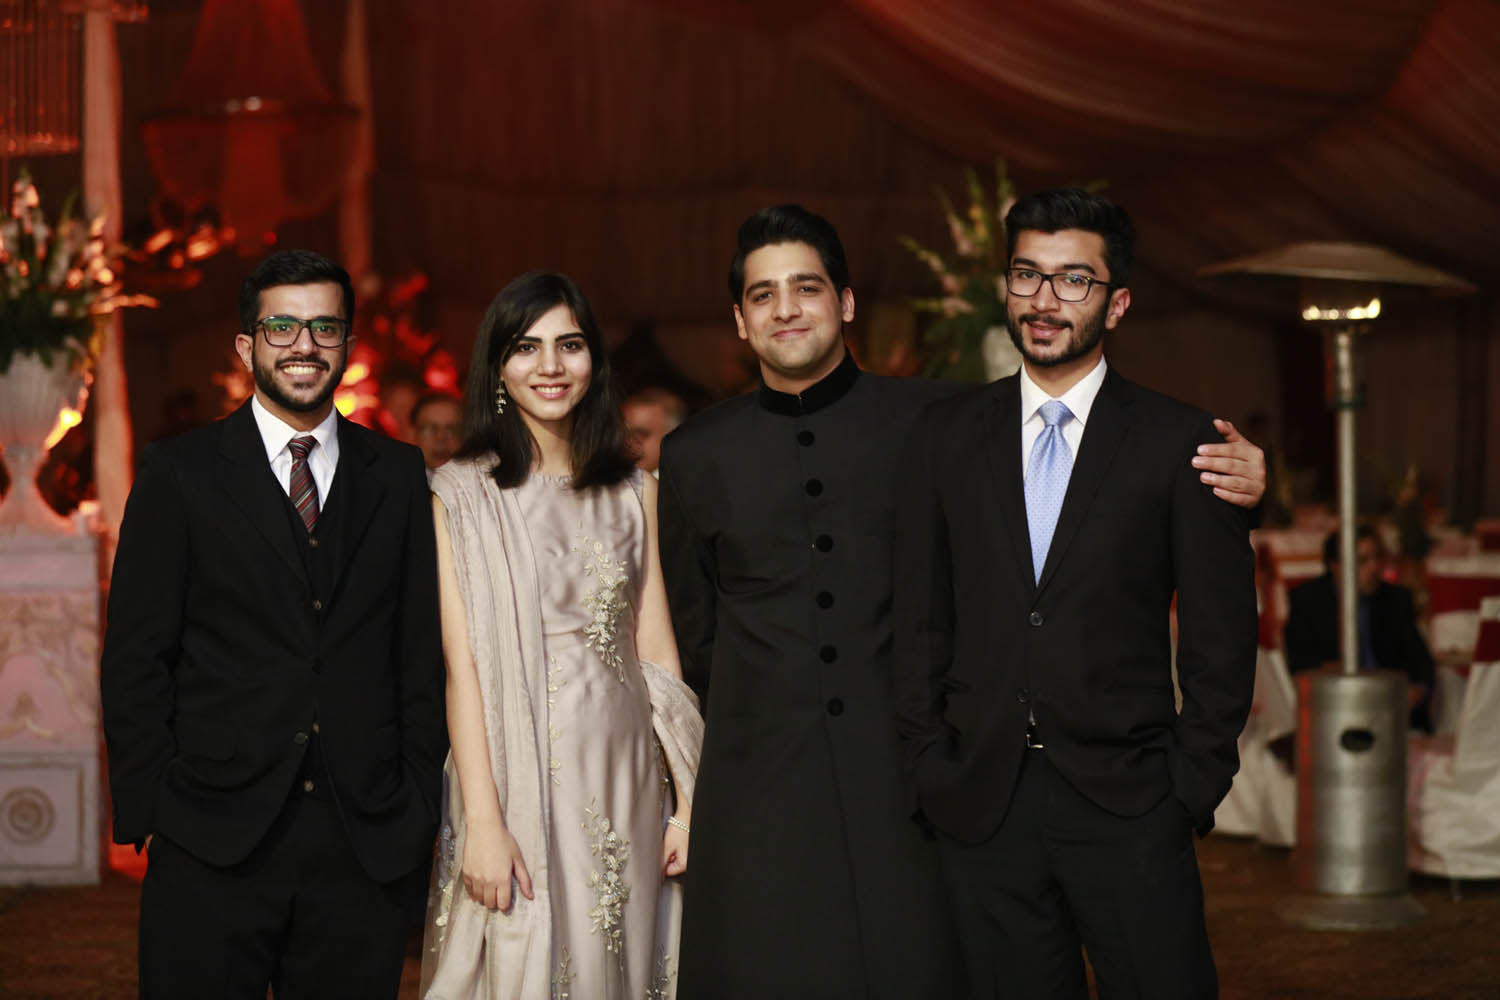 Rafi,wafa,Mussa and Hashim